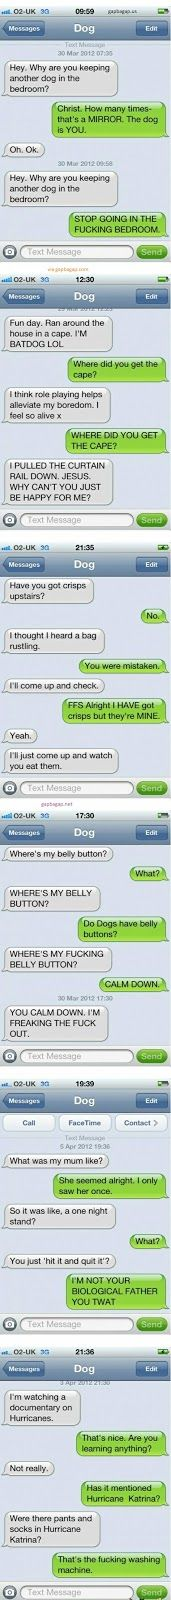 Top 5 Hilarious Text Messages ft. Funny Dogs